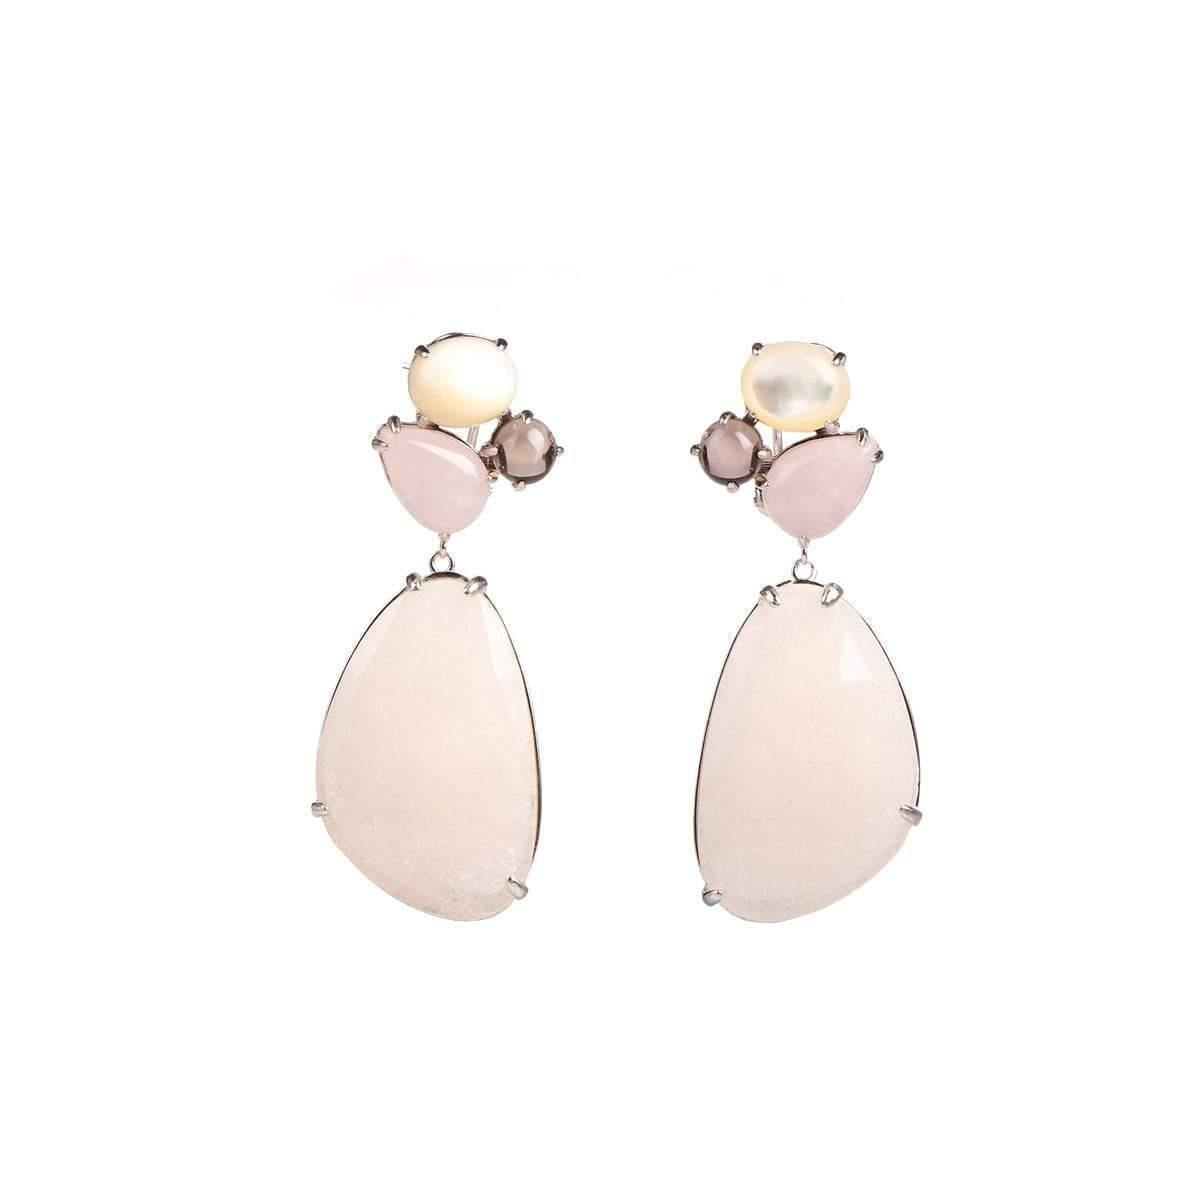 Alluring Mystery Pink Quartz & Pearl Sterling Silver Earrings